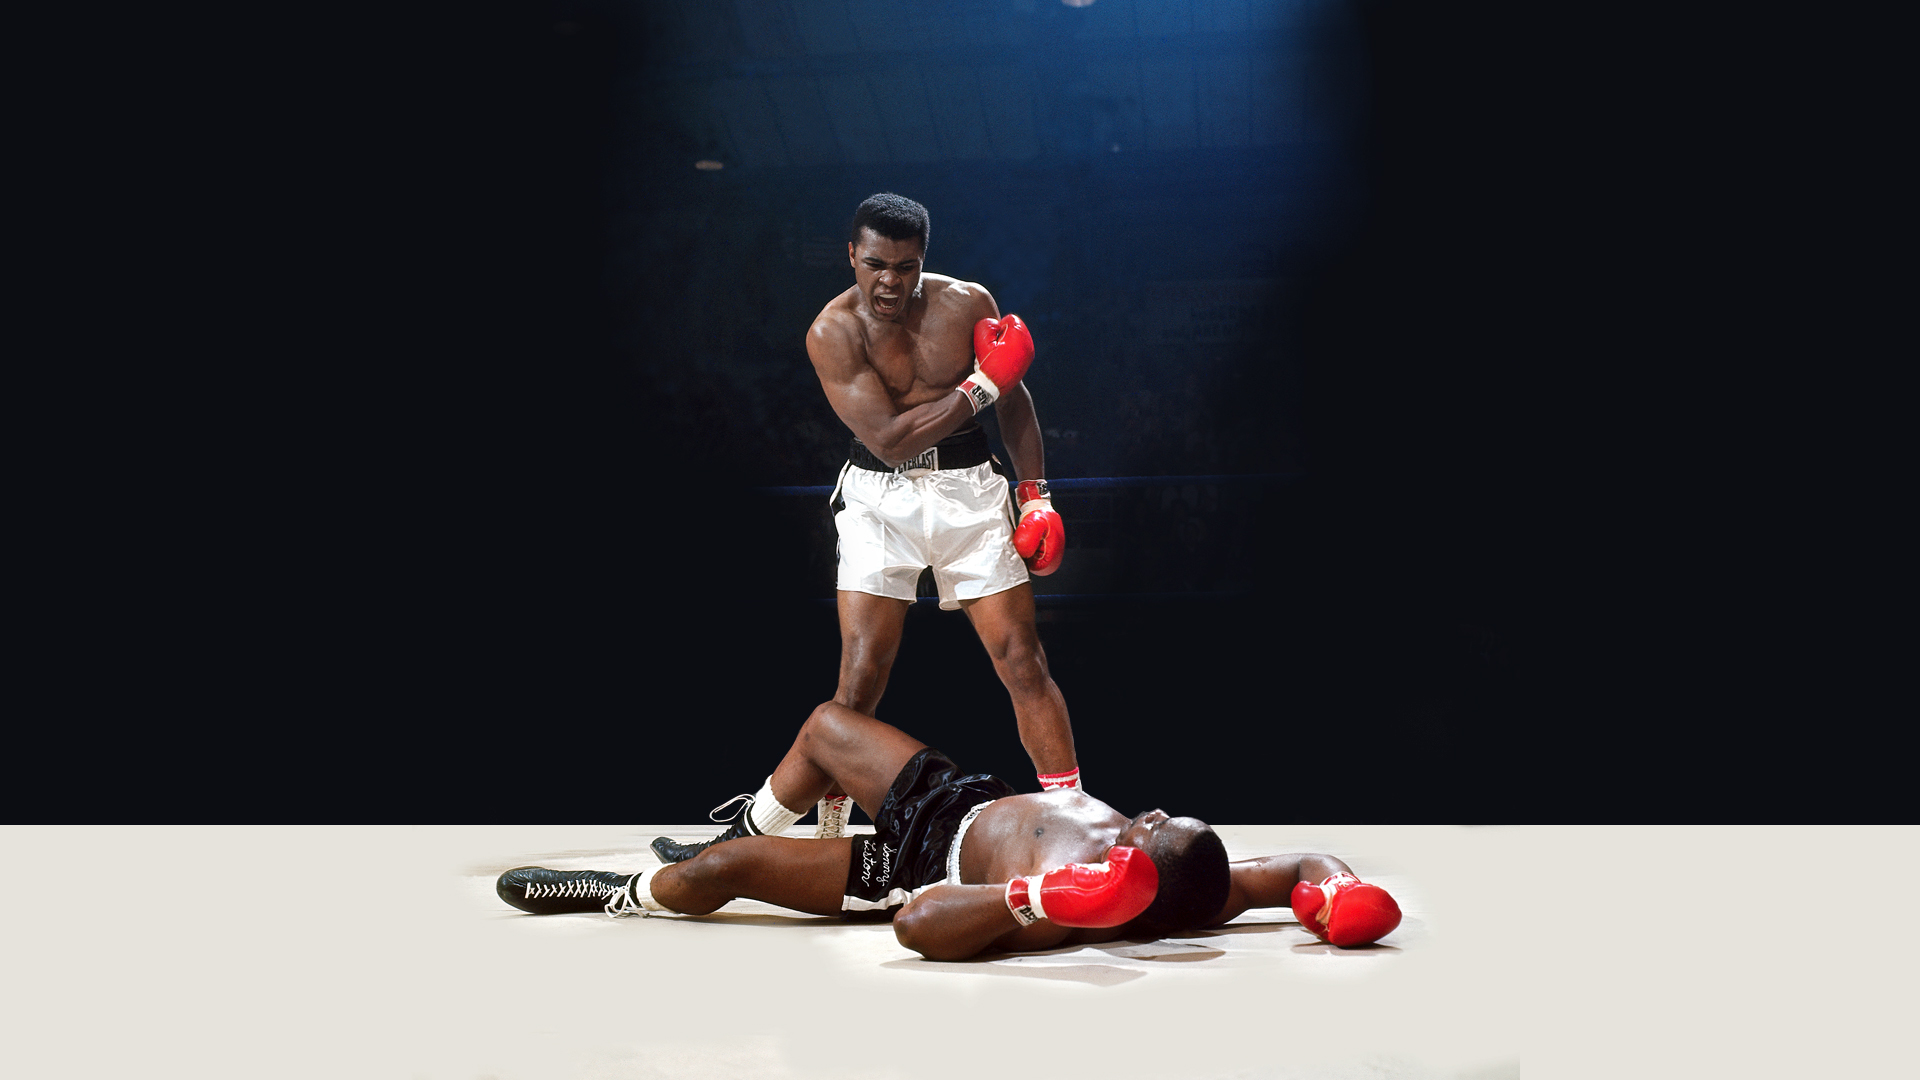 Muhammad Ali Vs Sonny Liston Full HD Wallpaper And Background Image